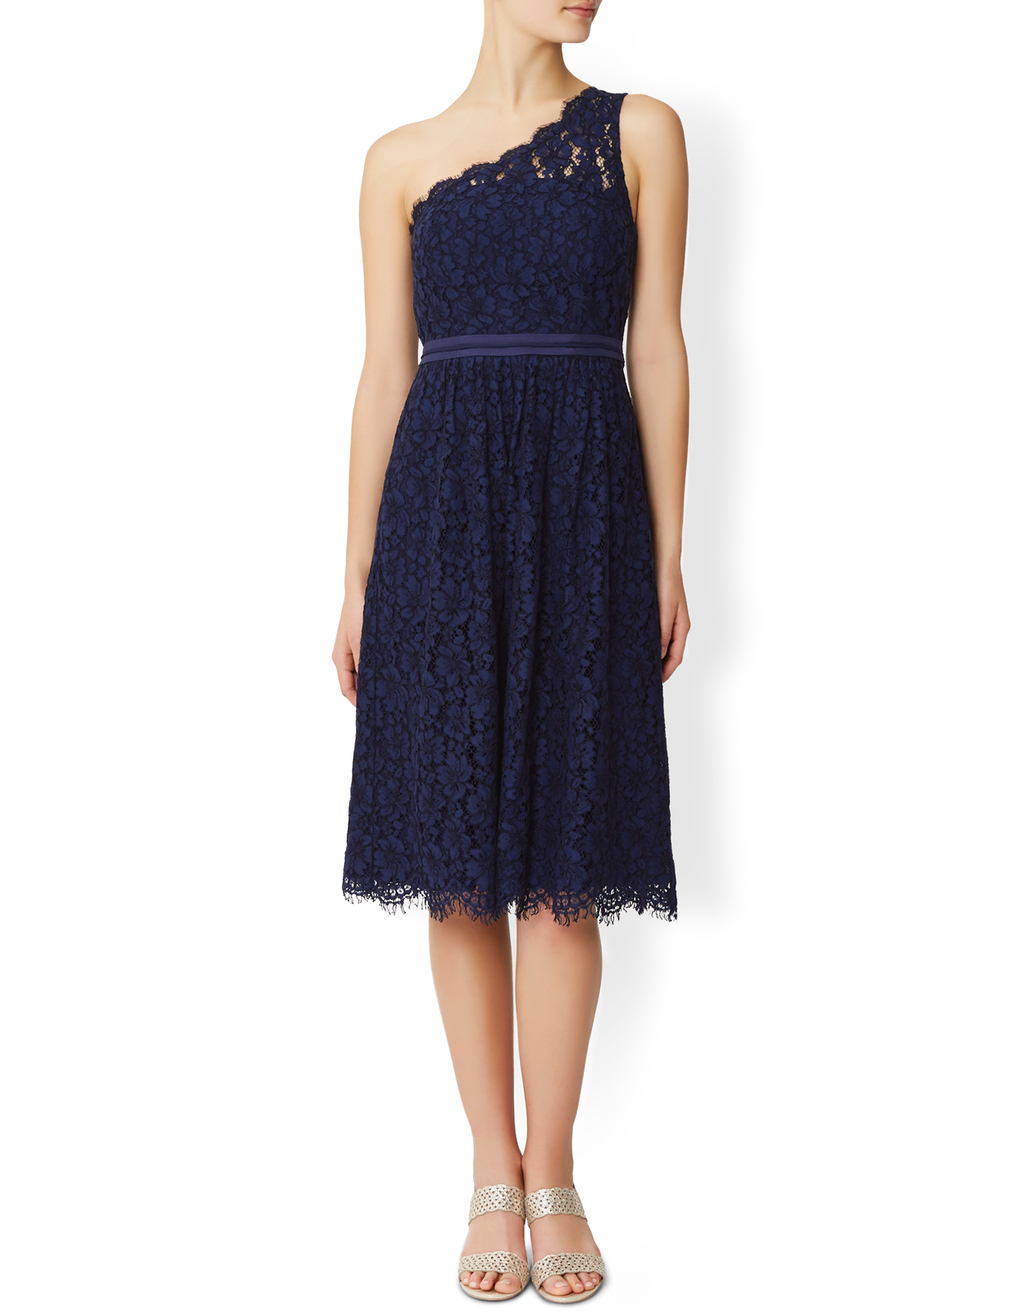 Juniper Lace Dress - length: below the knee; sleeve style: sleeveless; style: asymmetric (top); neckline: asymmetric; predominant colour: navy; occasions: evening; fit: body skimming; fibres: polyester/polyamide - stretch; sleeve length: sleeveless; texture group: lace; pattern type: fabric; pattern size: standard; pattern: patterned/print; season: s/s 2016; wardrobe: event